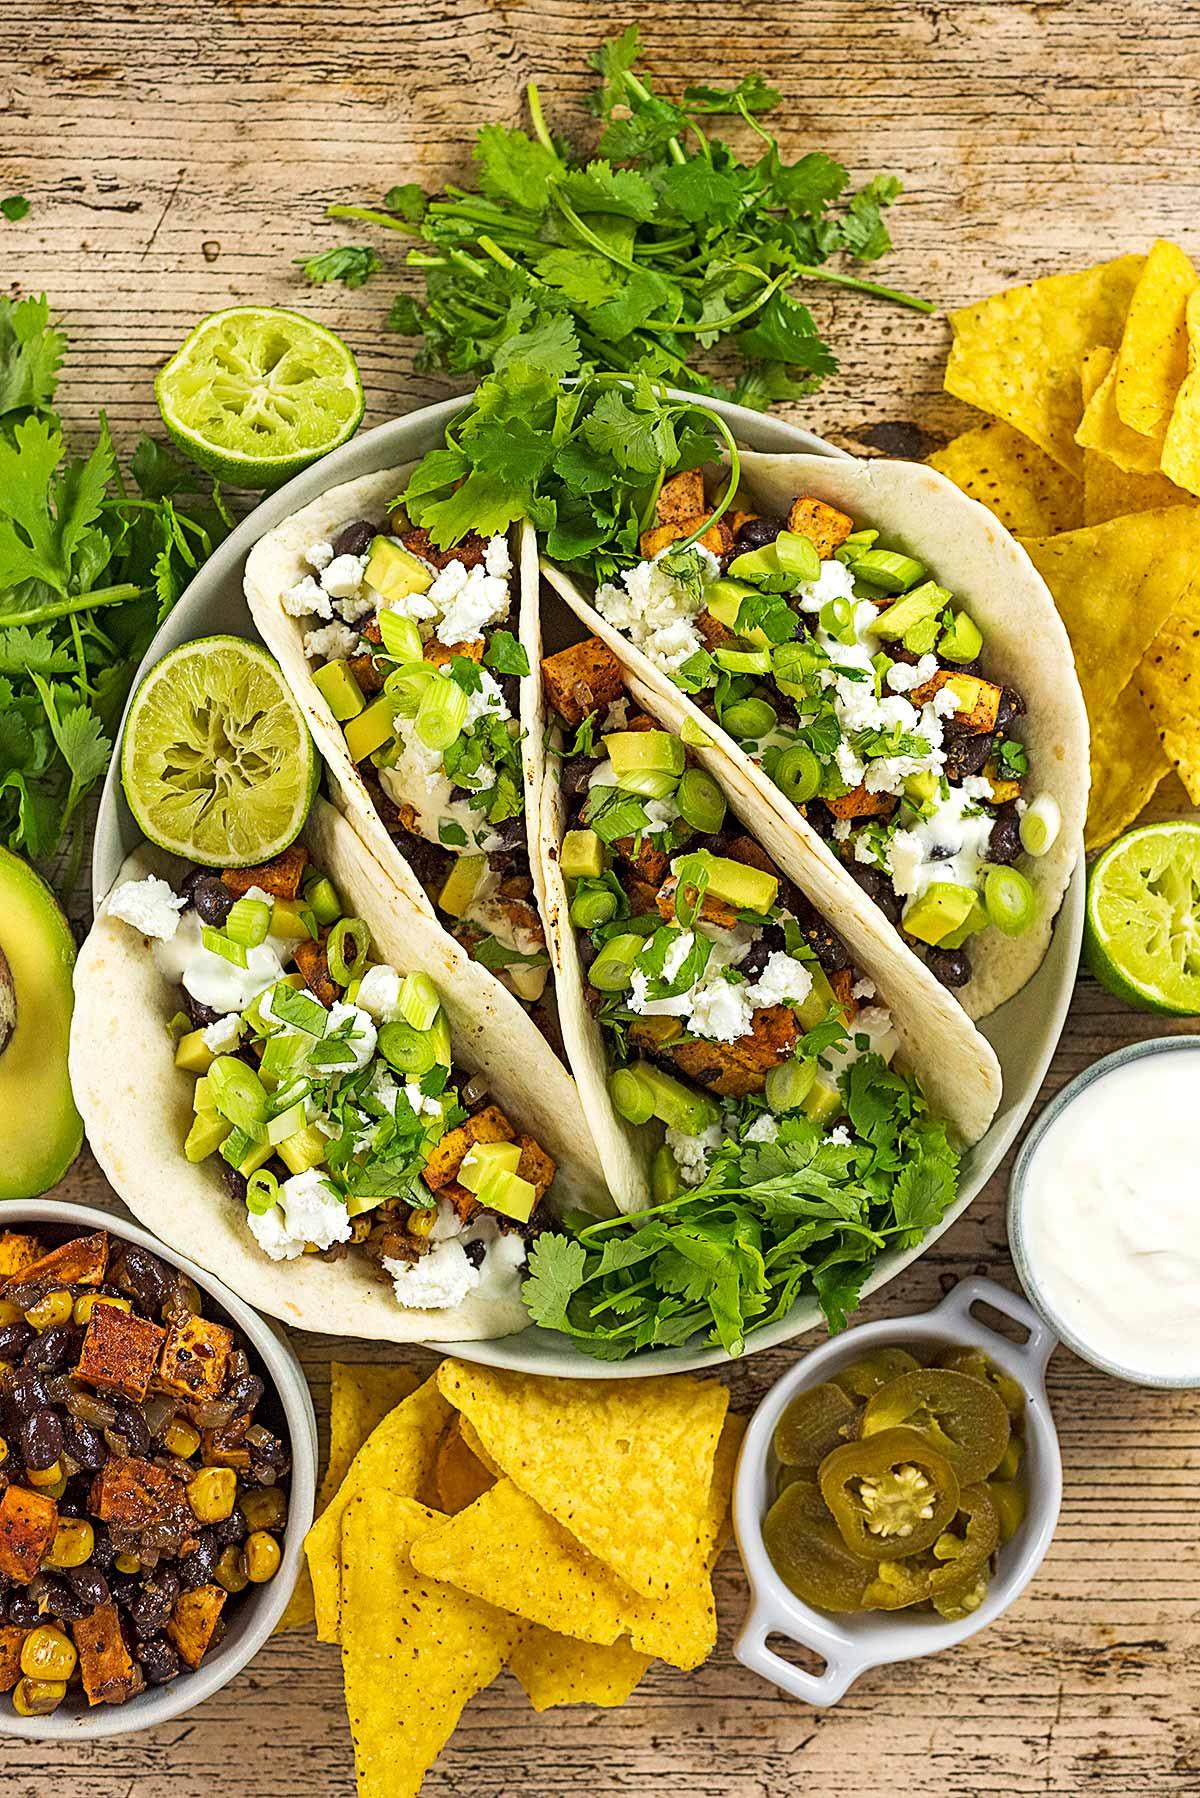 A serving bowl containing four tacos topped with chopped onions, avocado and feta.